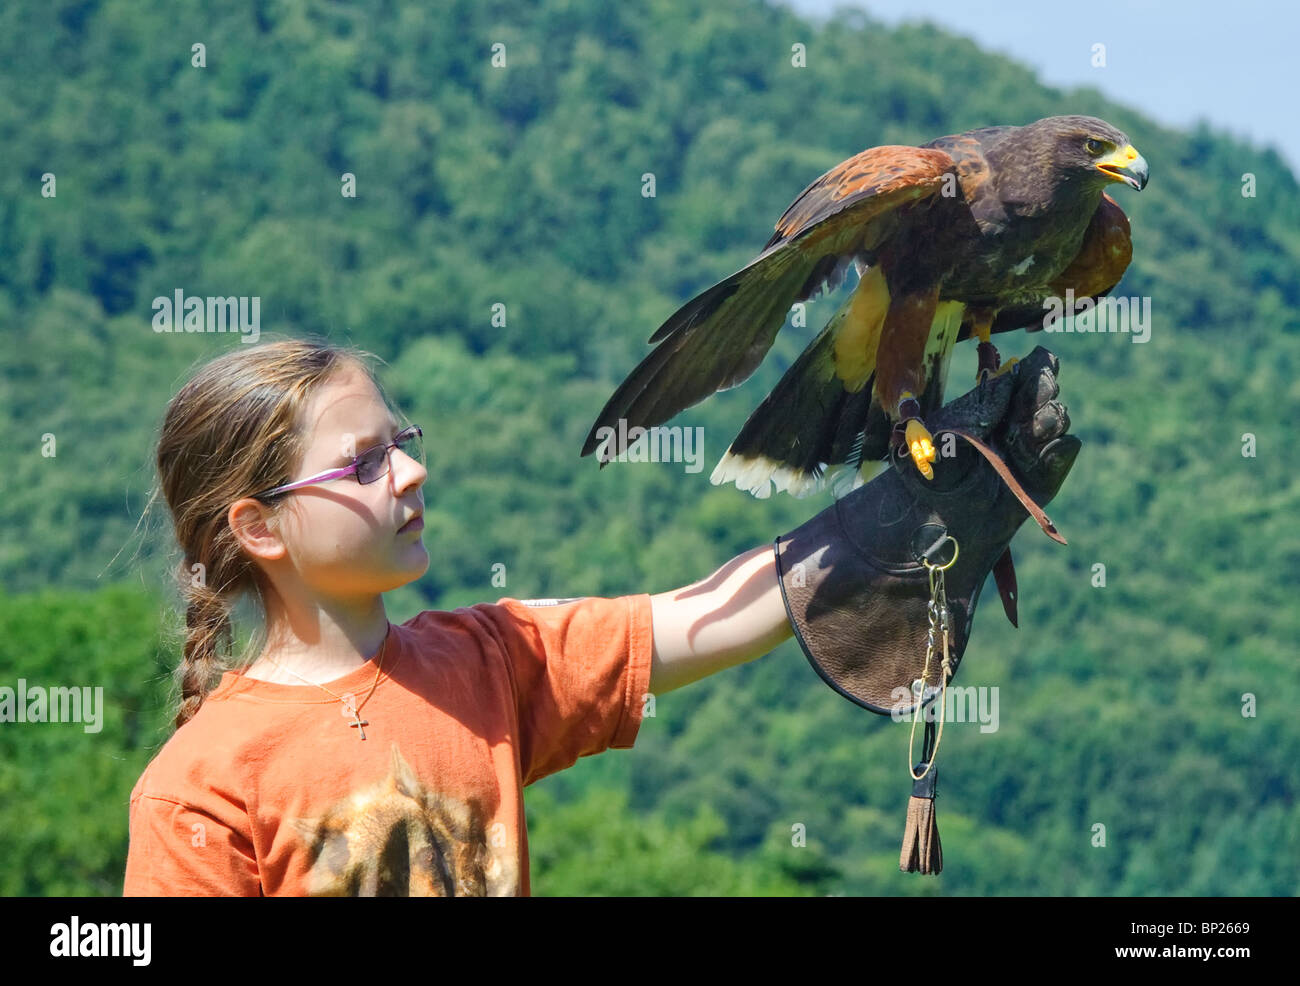 Young Girl and Harris's Hawk - Stock Image